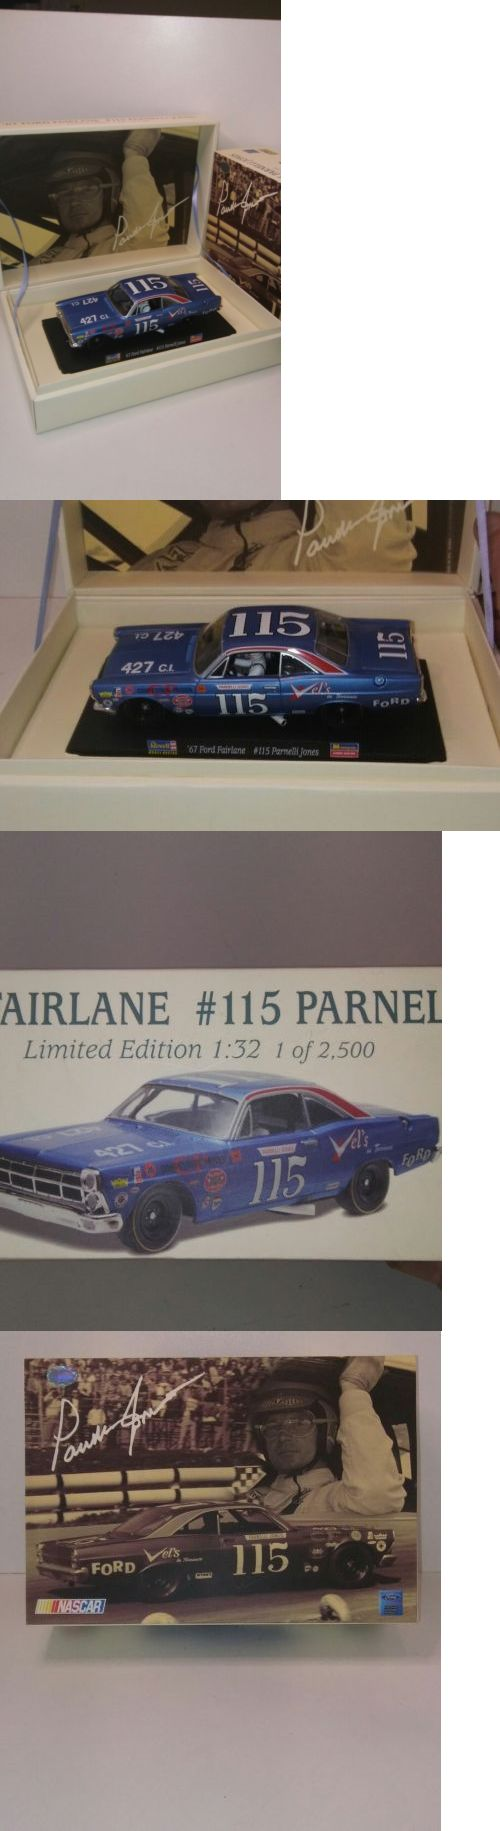 Other Slot Cars 776: Vintage Slot Car 1 32 -> BUY IT NOW ONLY: $89 on eBay!